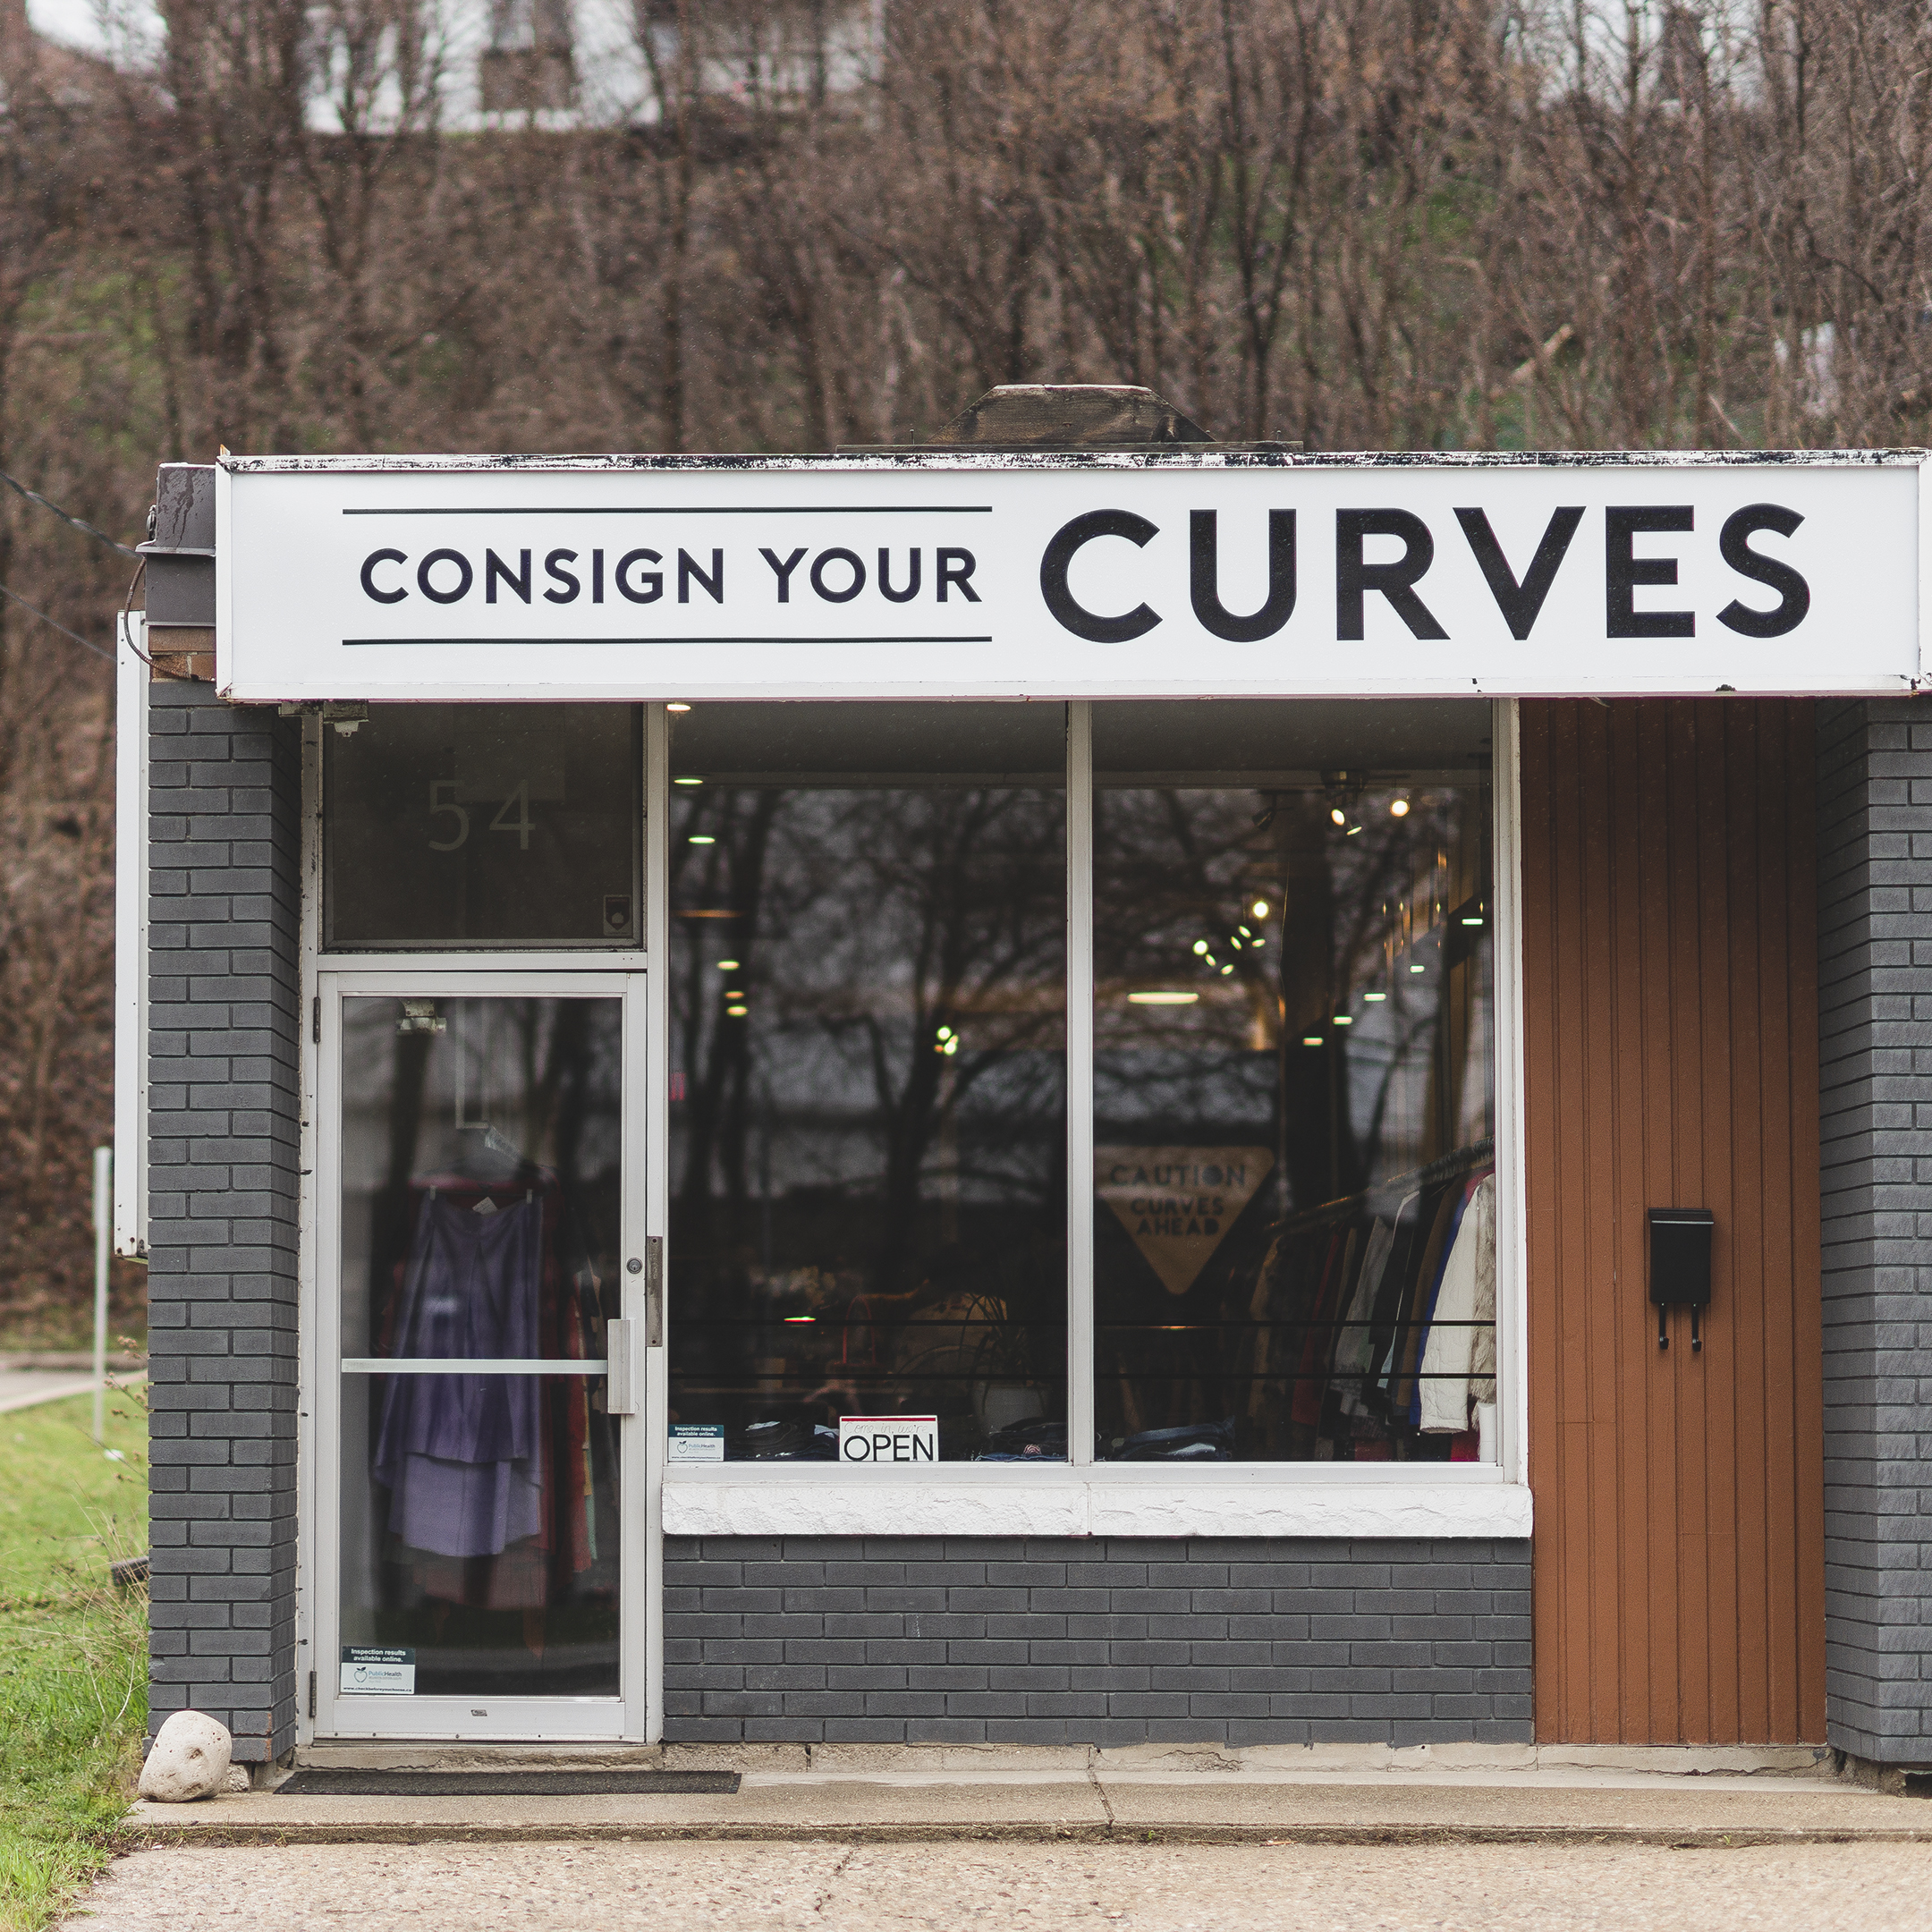 Consign Your Curves  - 54 Elizabeth Street, Guelph, ON